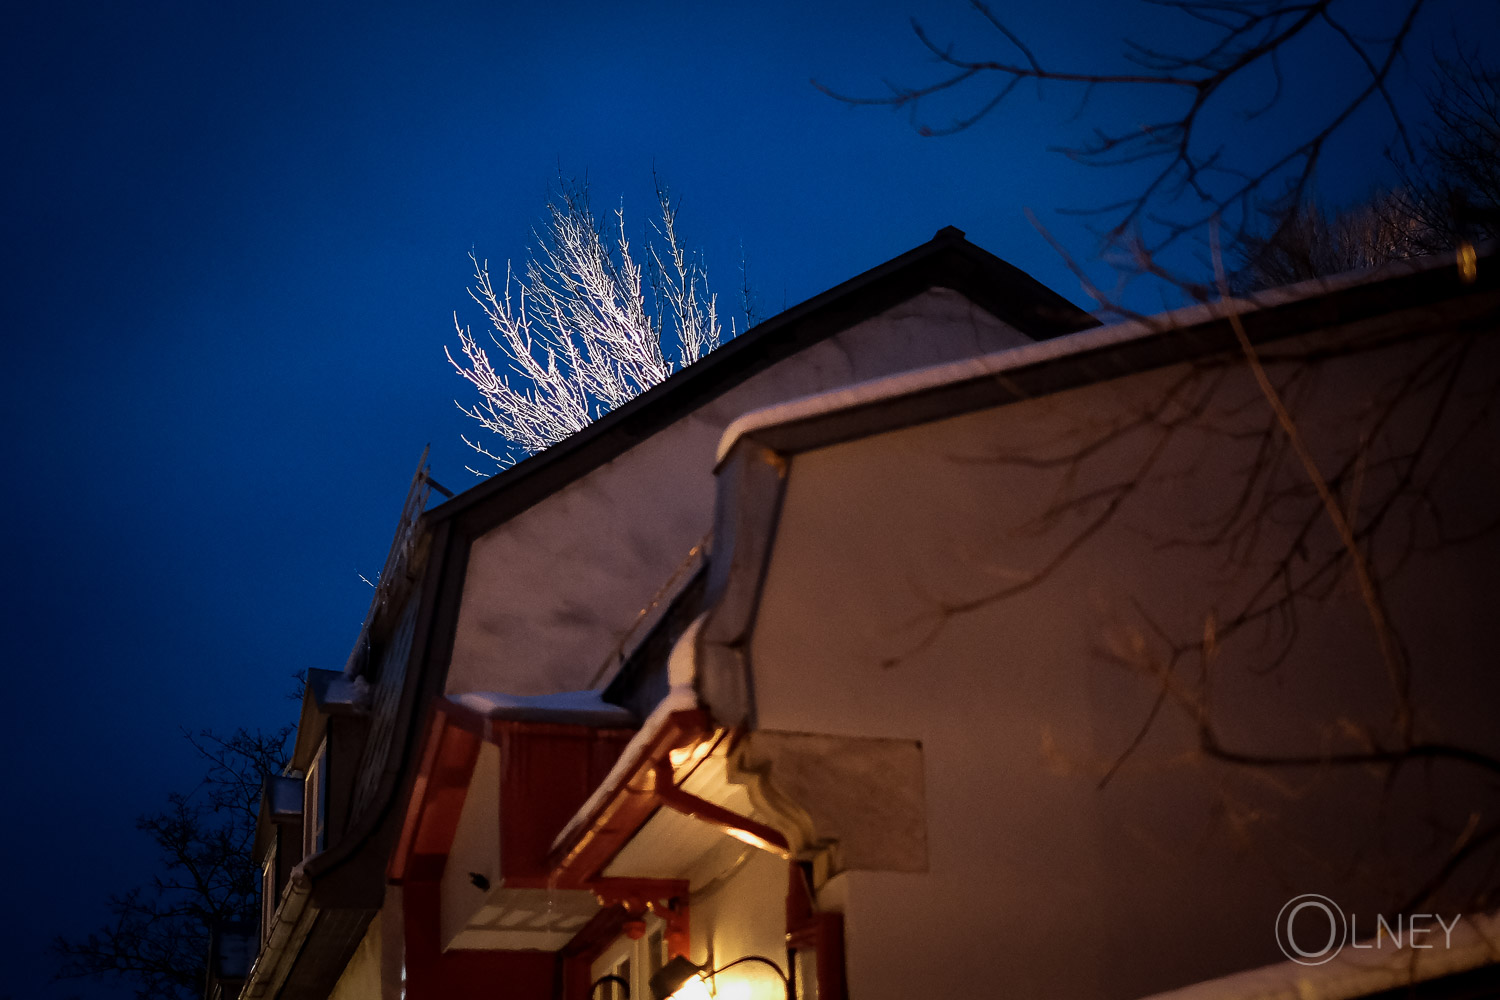 illuminated tree branches in old quebec city